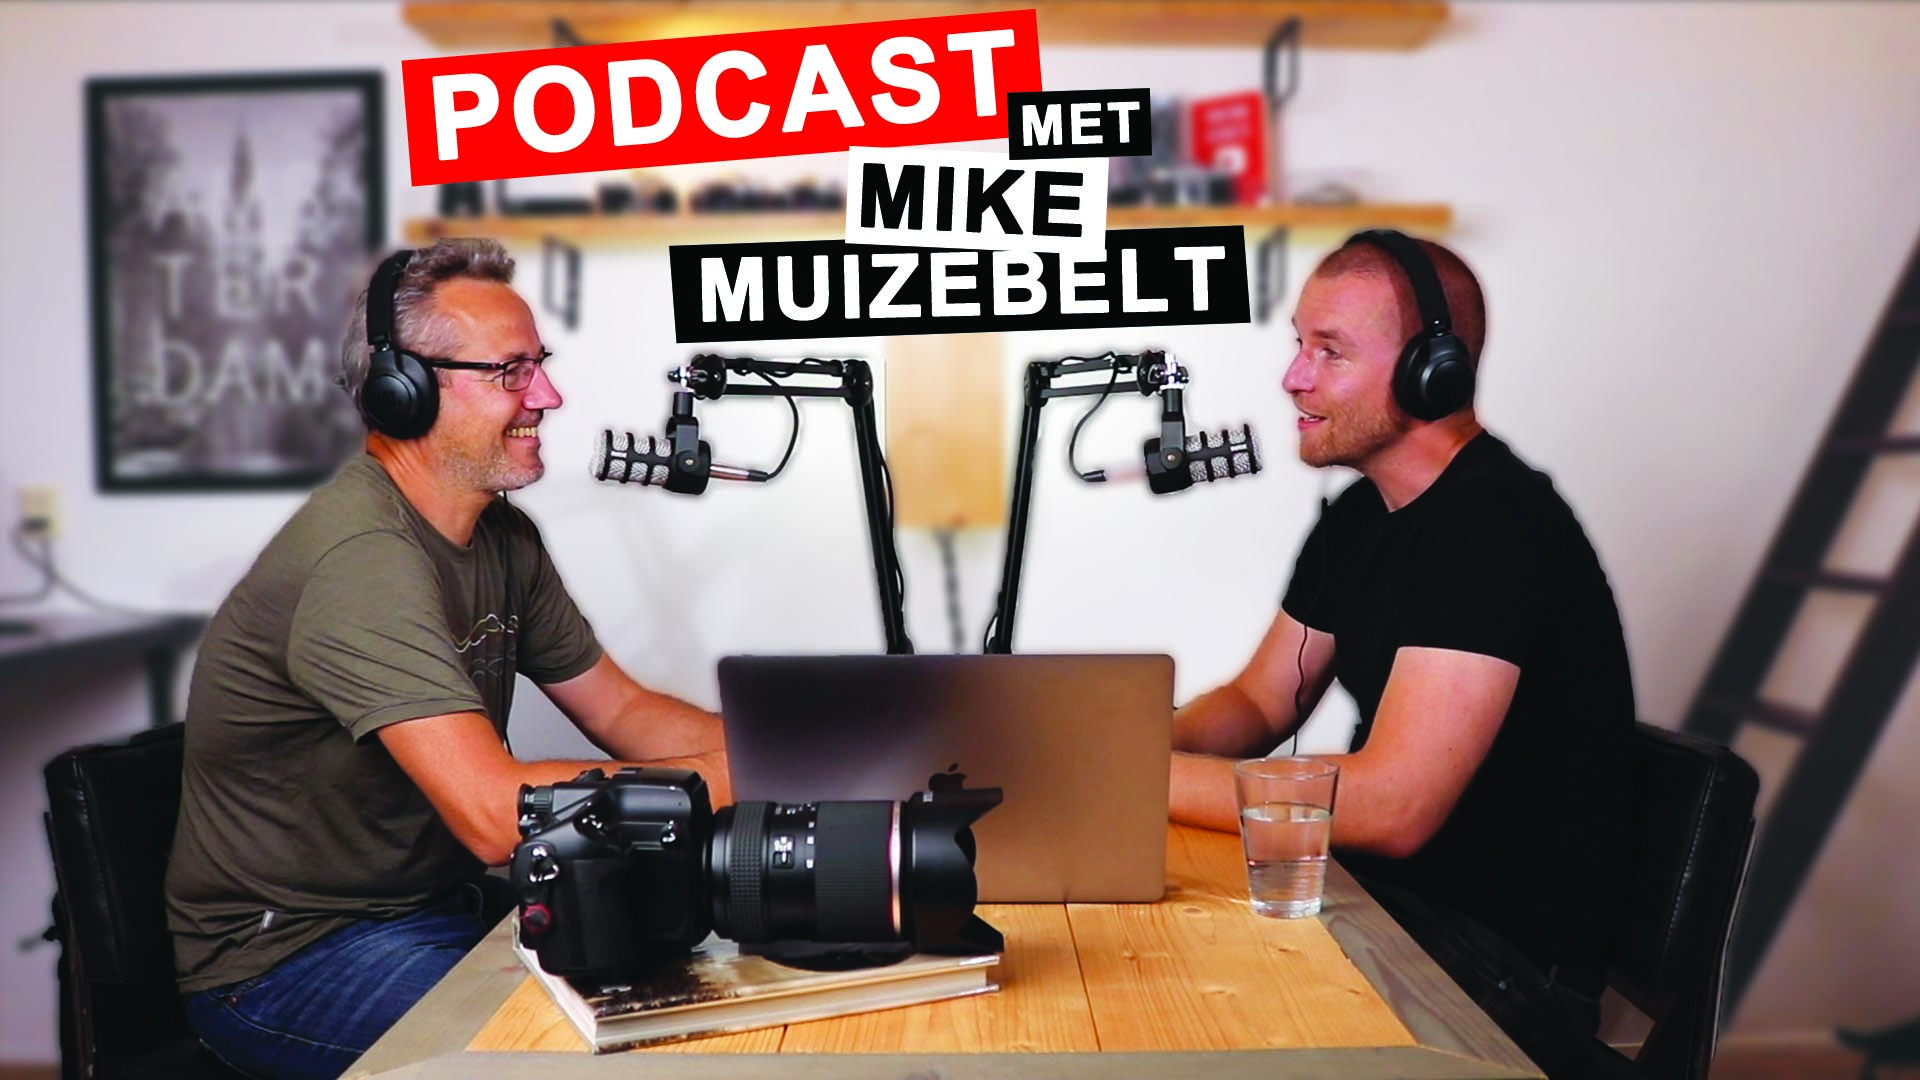 Mike Muizebelt – Wildlife- en landschapsfotograaf